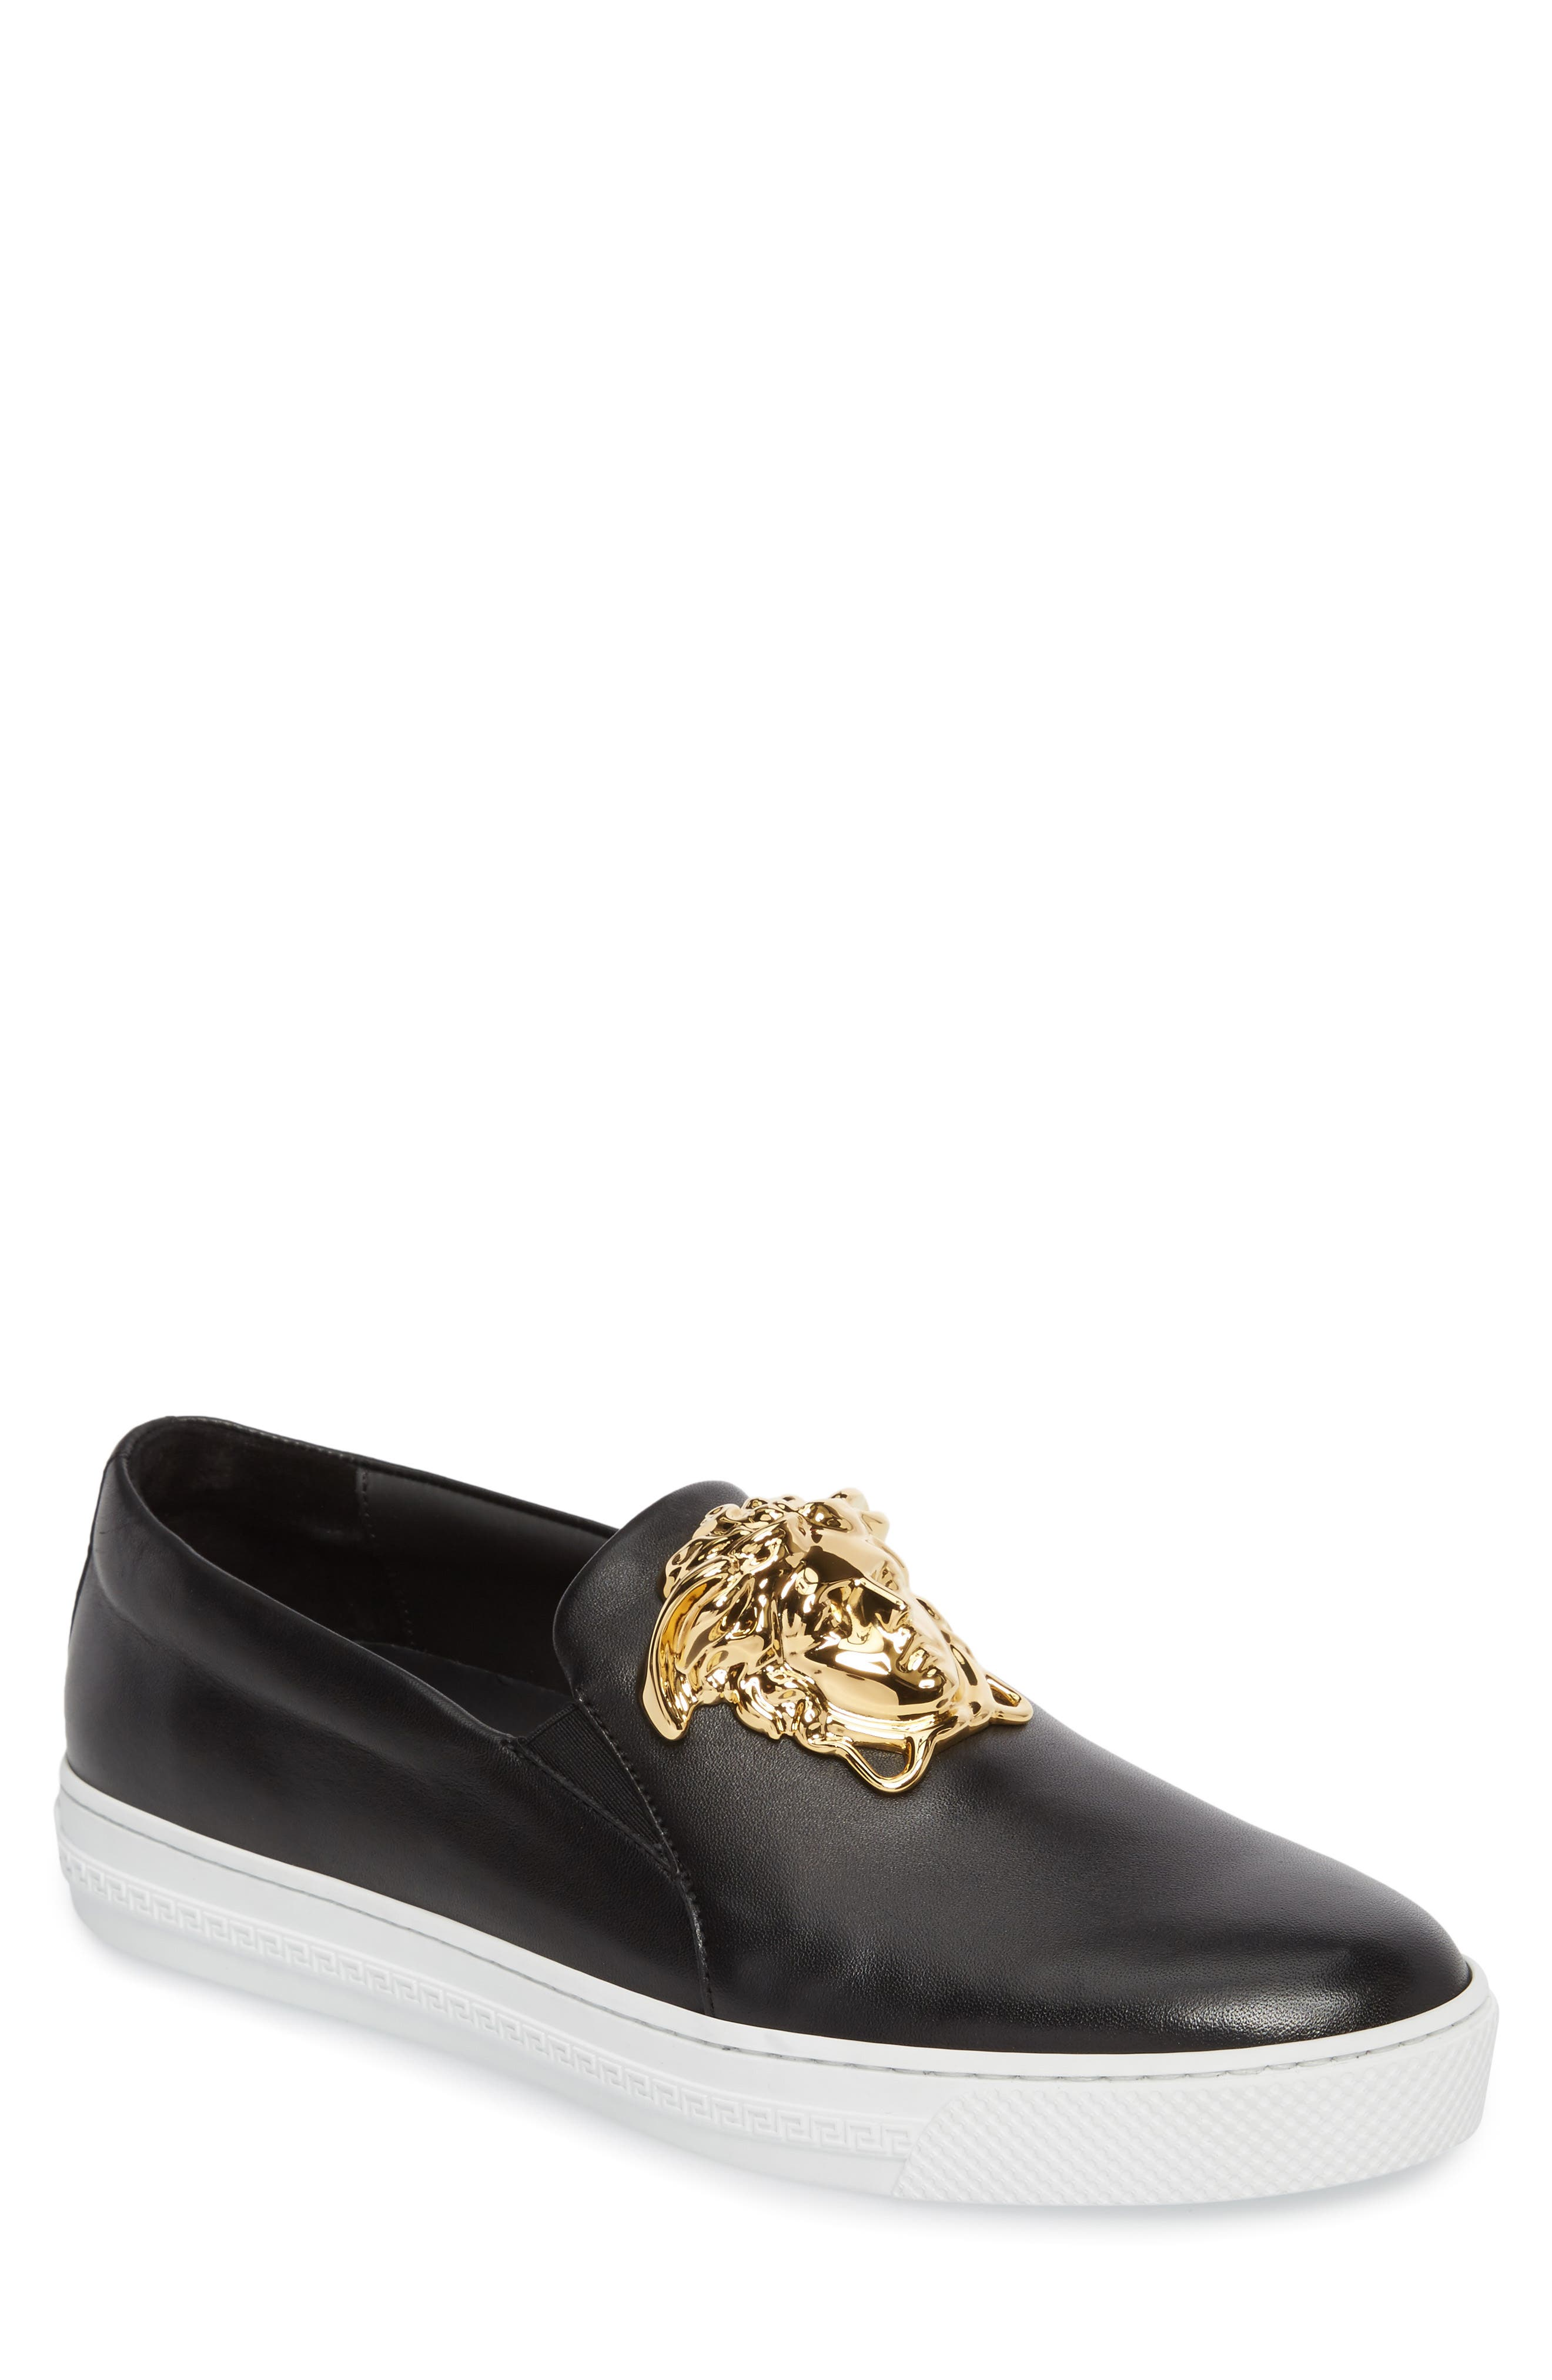 Alternate Image 1 Selected - Versace First Line Iconic Palazzo Slip-On (Men)